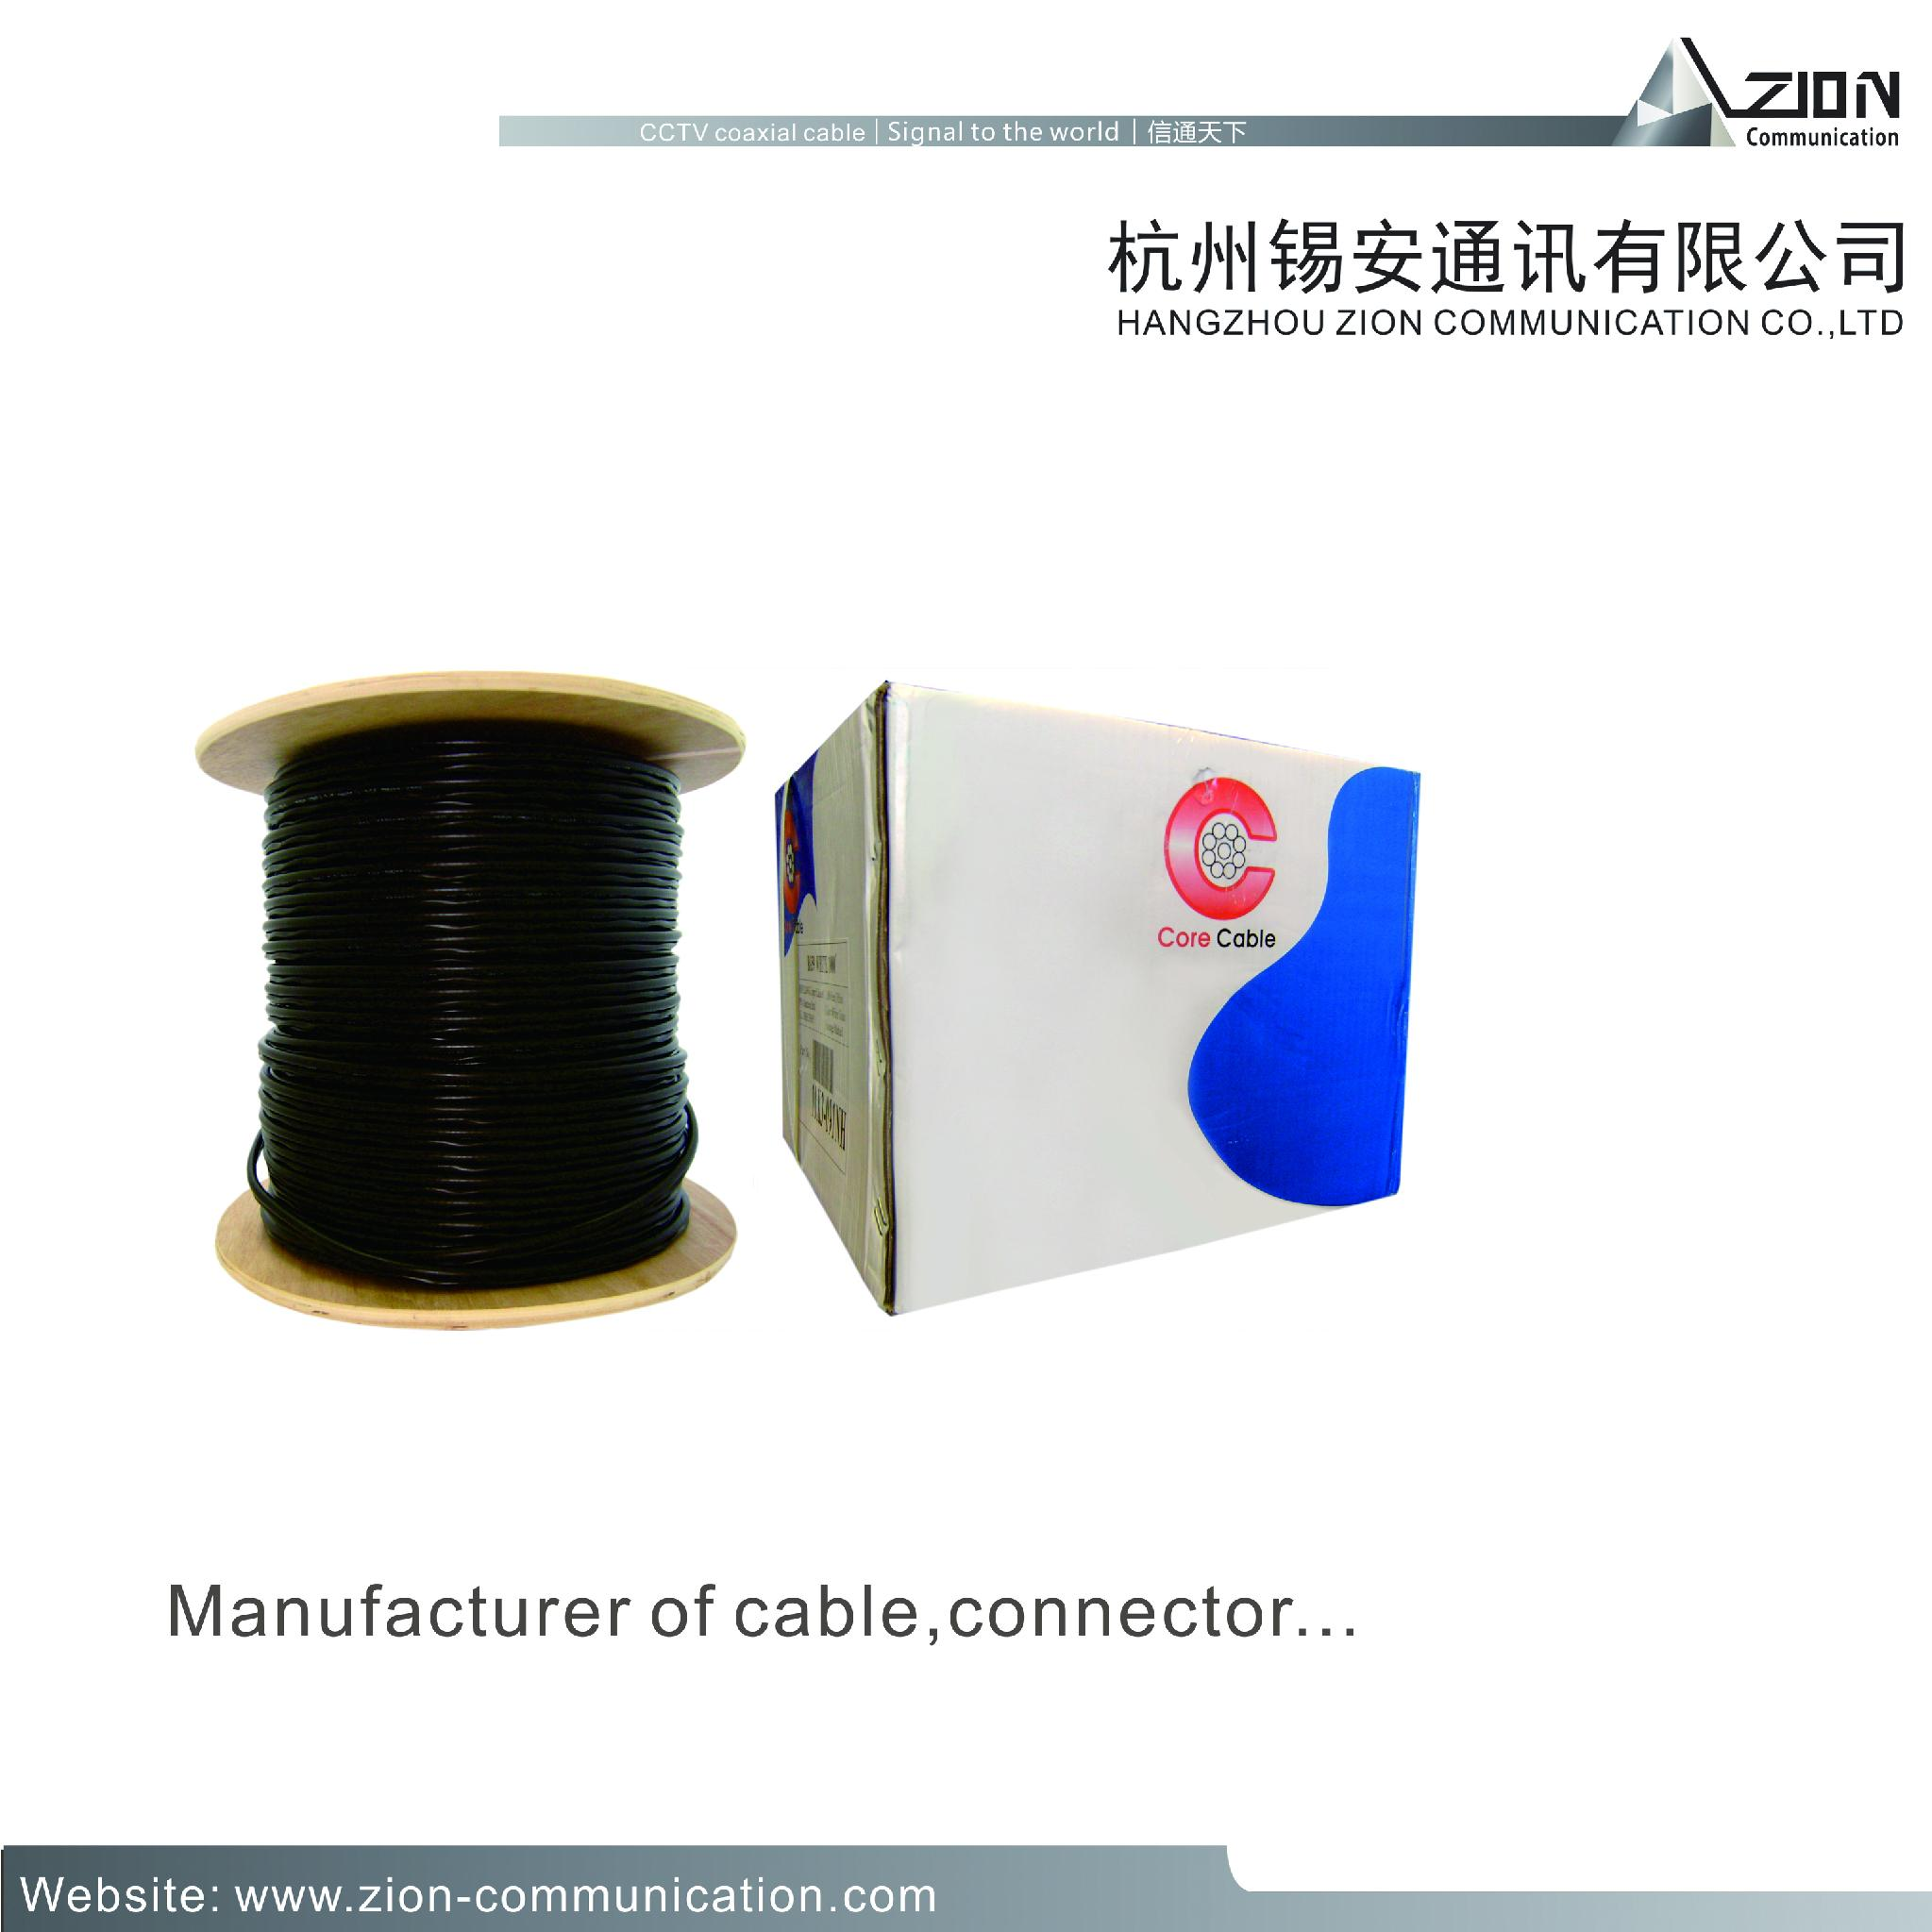 High quality 0.50±0.01mm Bare Copper Coaxial cable 3C-2V BC FPE 95 ...